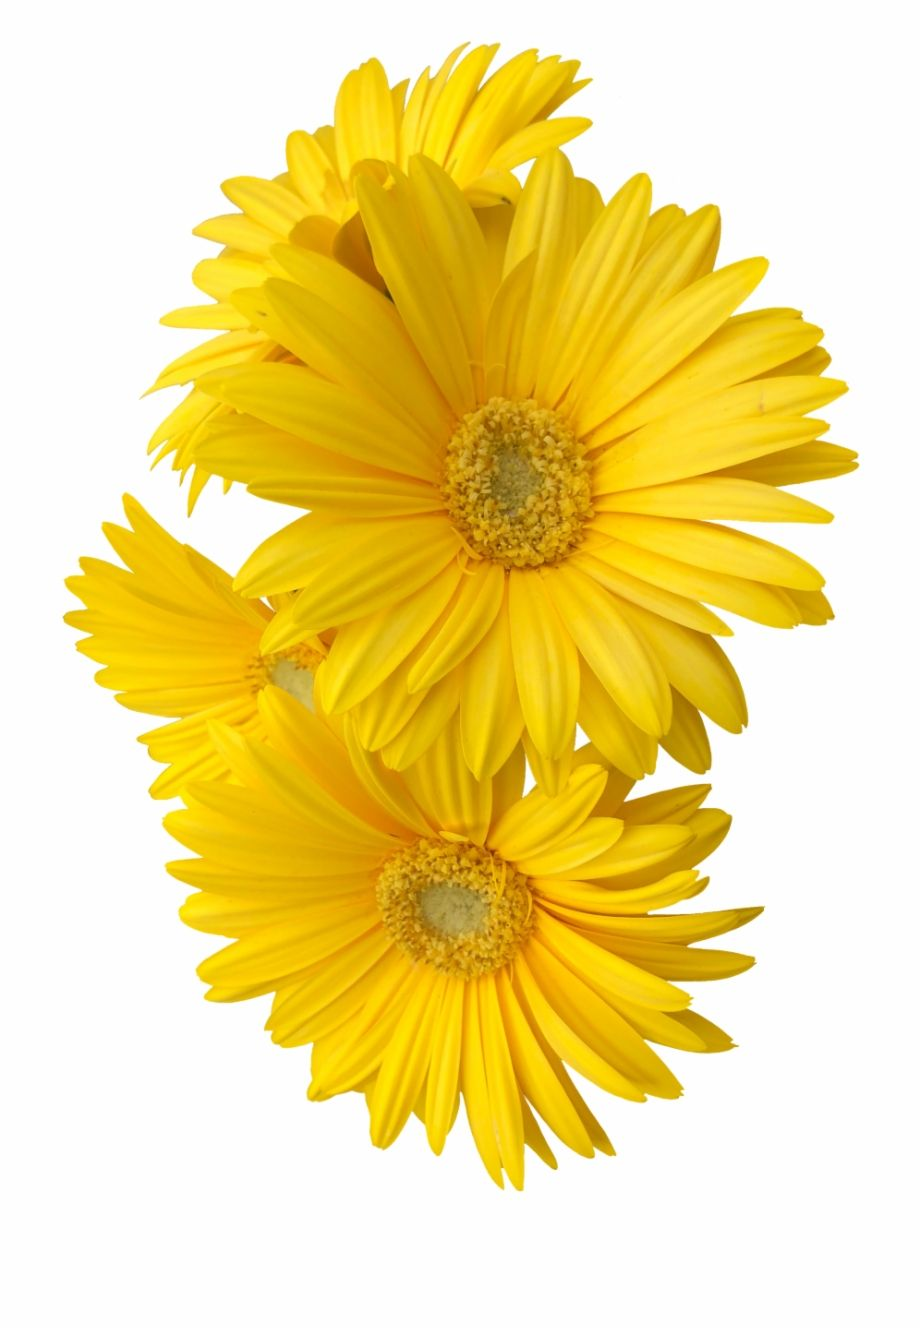 Google Image Result For Https Img Pngio Com Yellow Daisy Flower Flowers Freetoedit Clip Art Sun Flower Yell Yellow Daisy Flower Daisy Flower Ethiopian Beauty